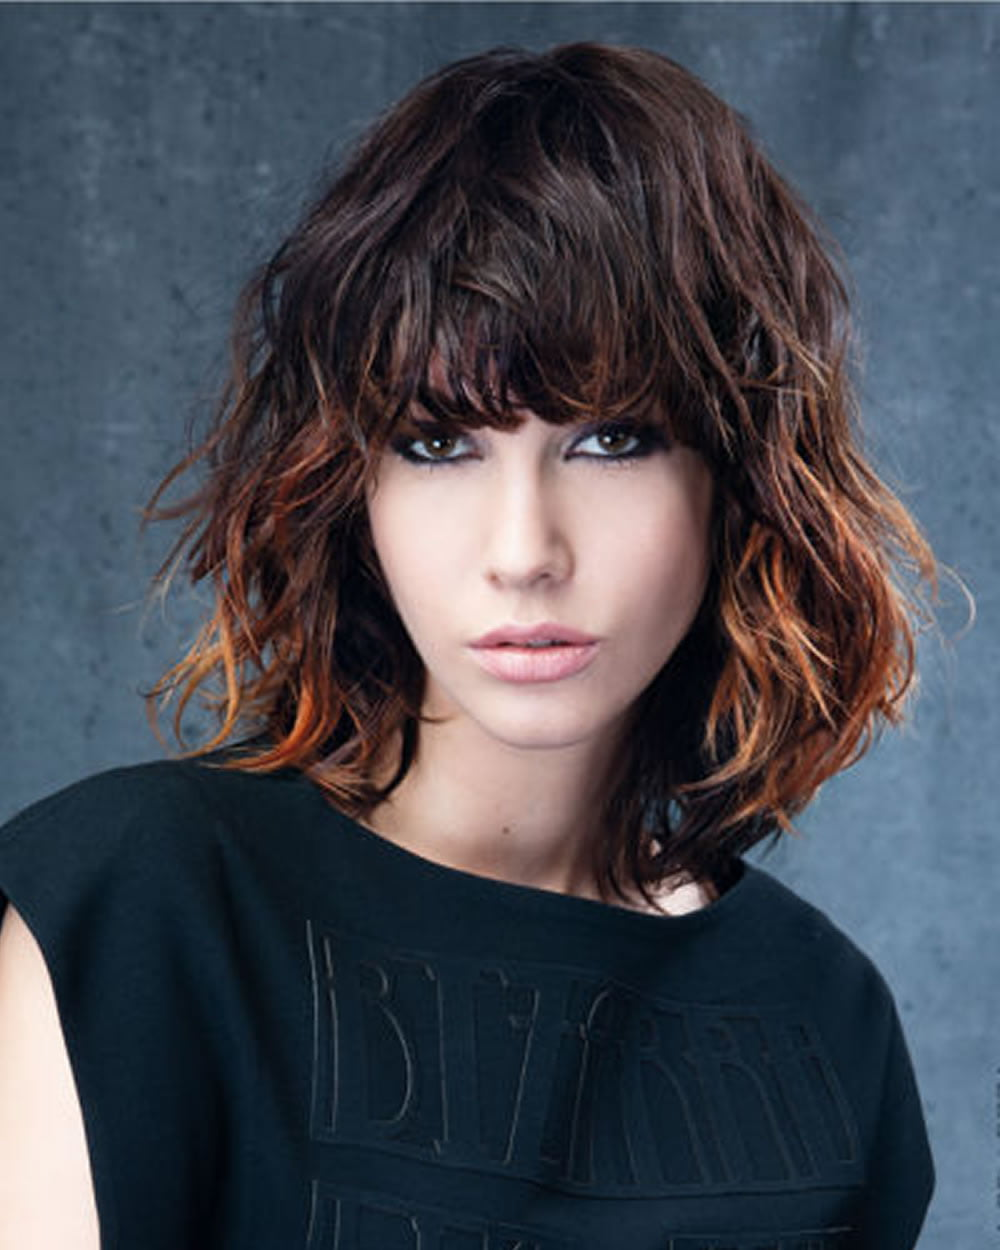 20 Curly Bob Hair Cuts That Will Inspire You To Go Short